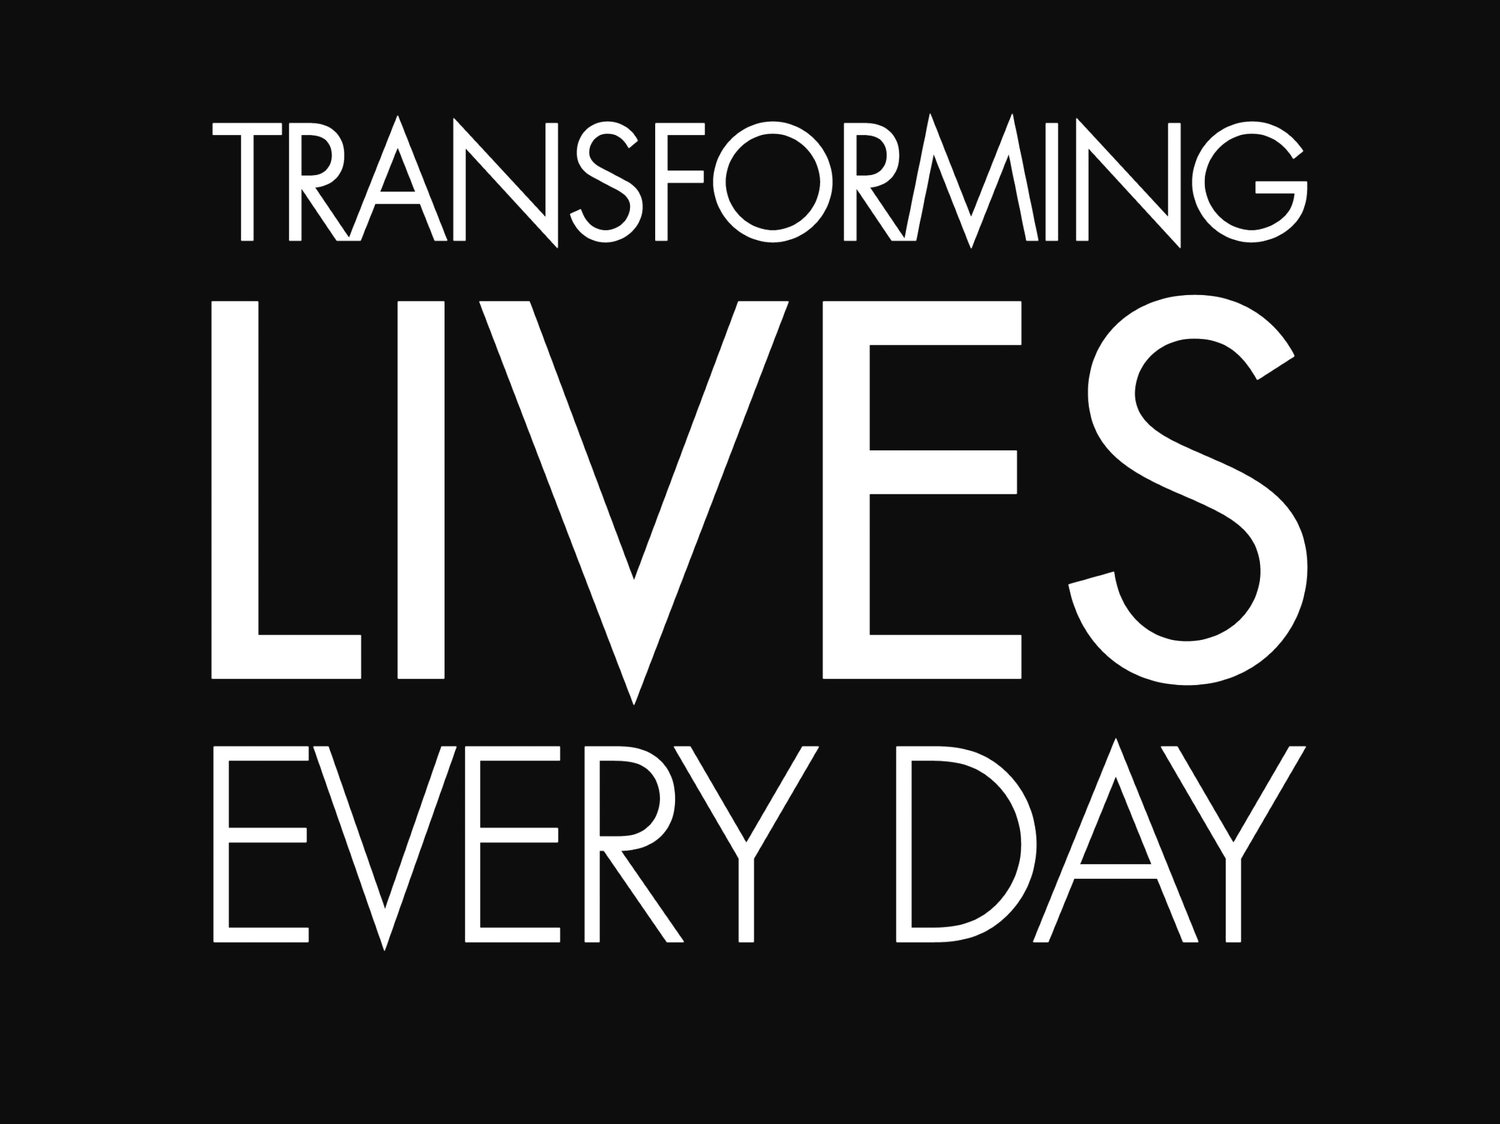 Transforming Lives Every Day